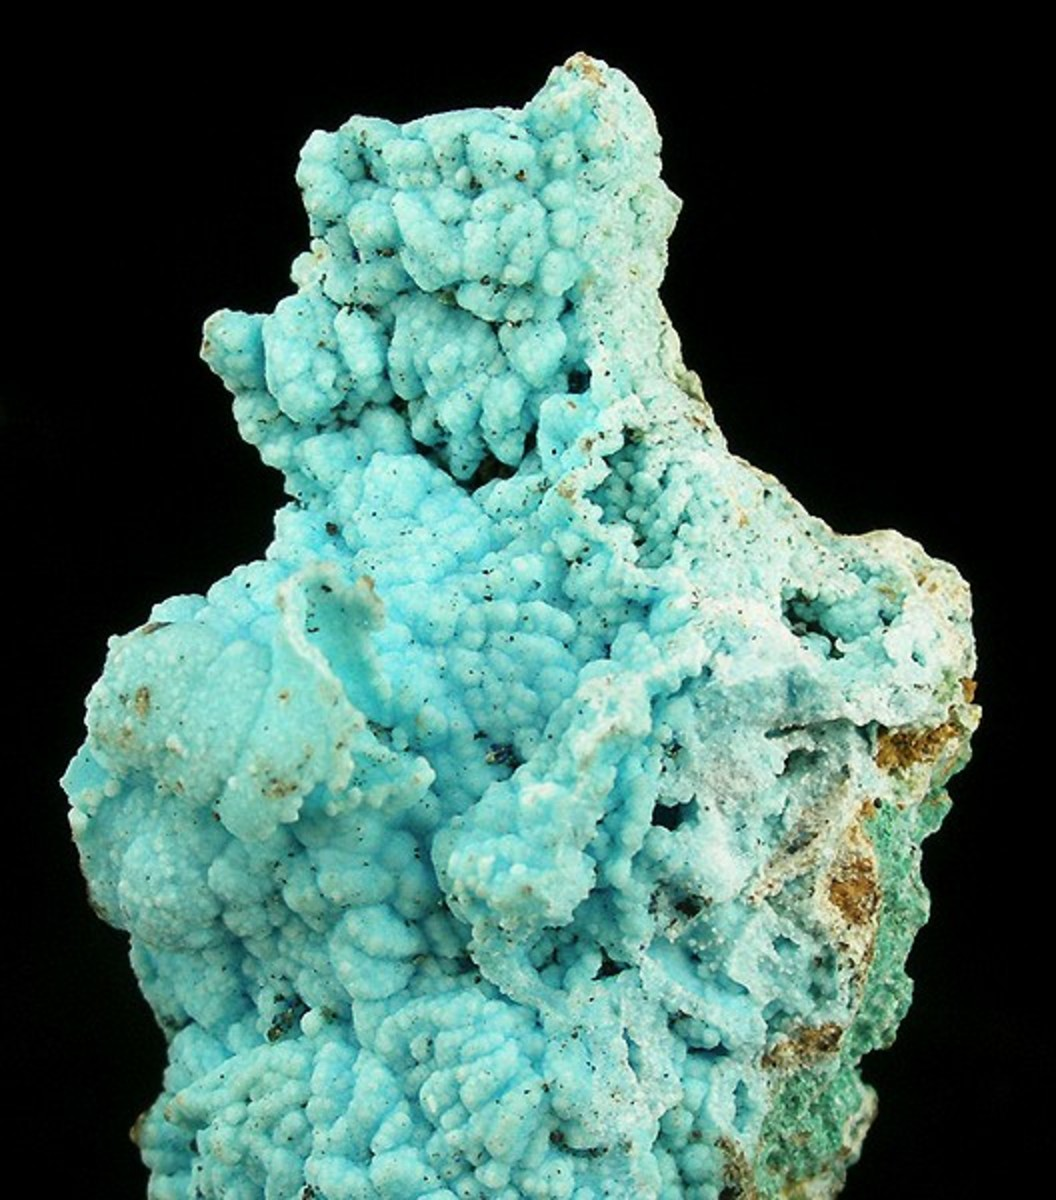 Chalcoalumite from the Copper Queen Mine in Bisbee, Arizona